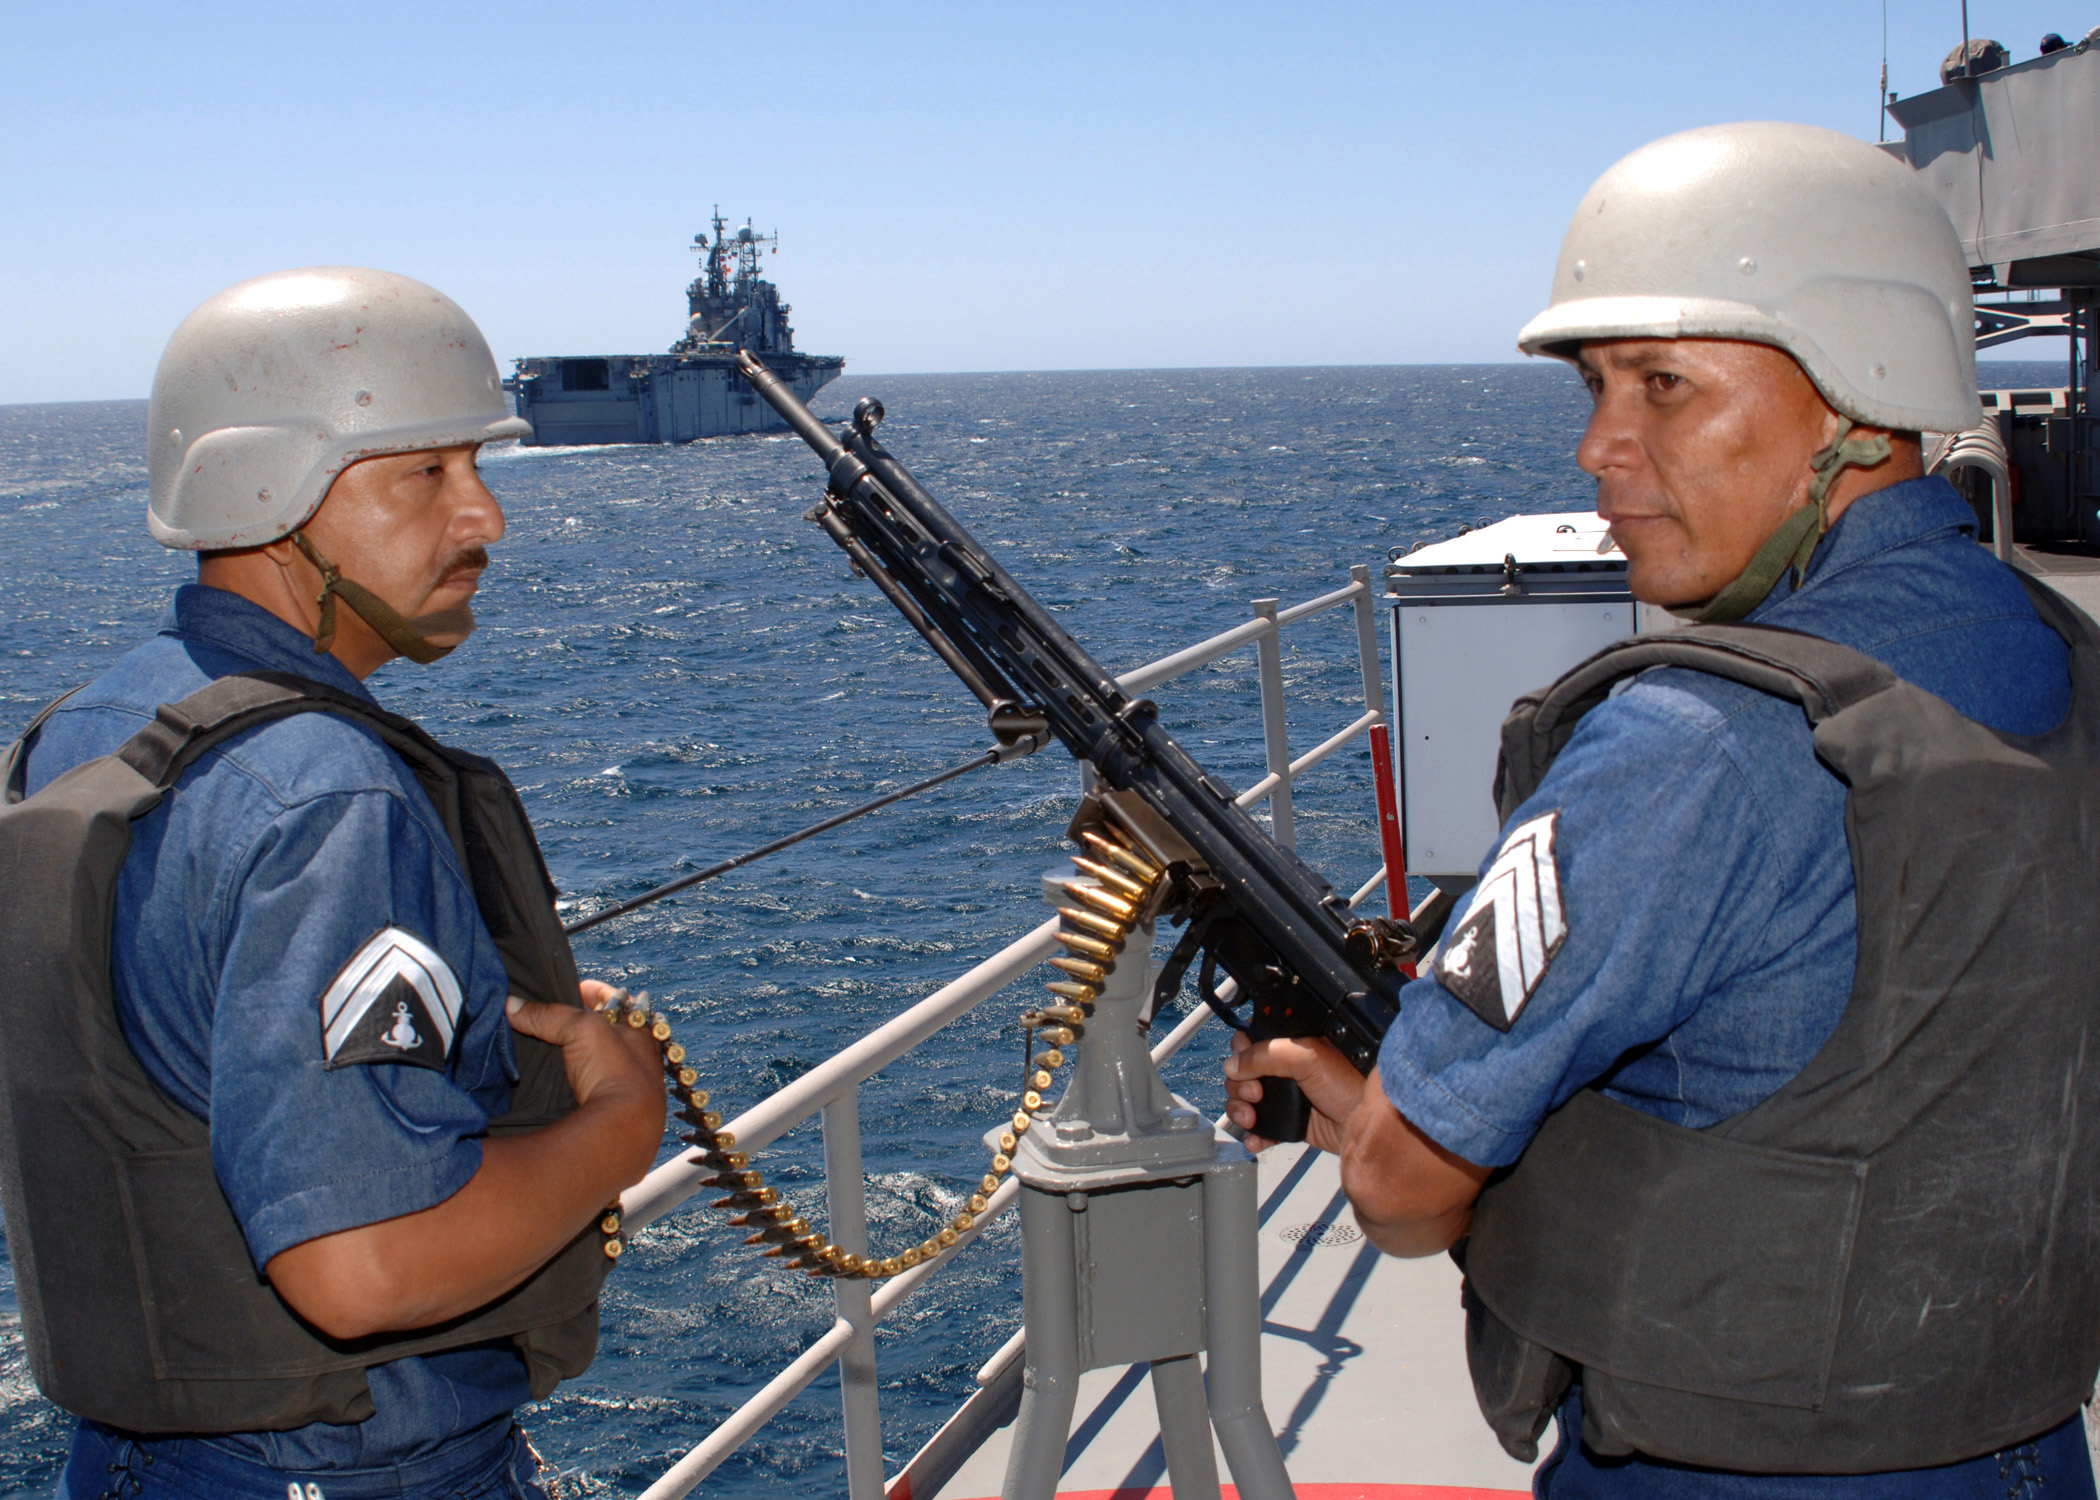 Mexican Navy soldiers use Heckler & Koch during a training drill with the U.S. Navy. (U.S. Navy Communications)